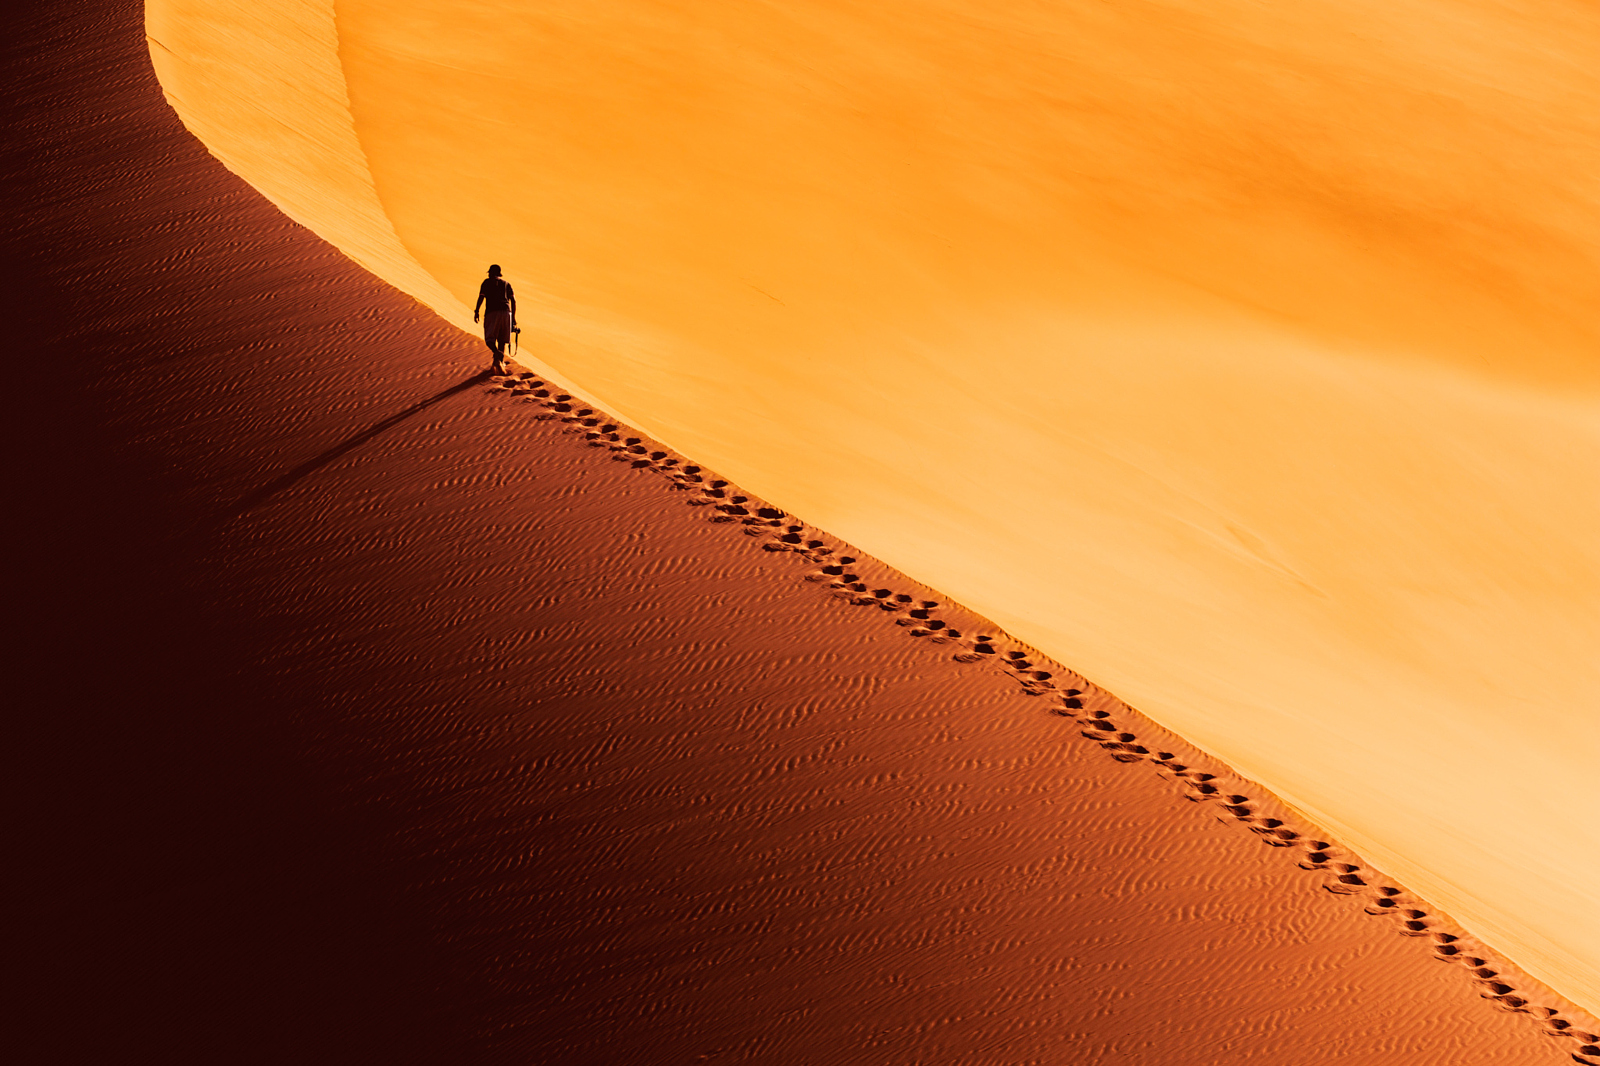 500px blog top 20 travel photos on 500px so far this year